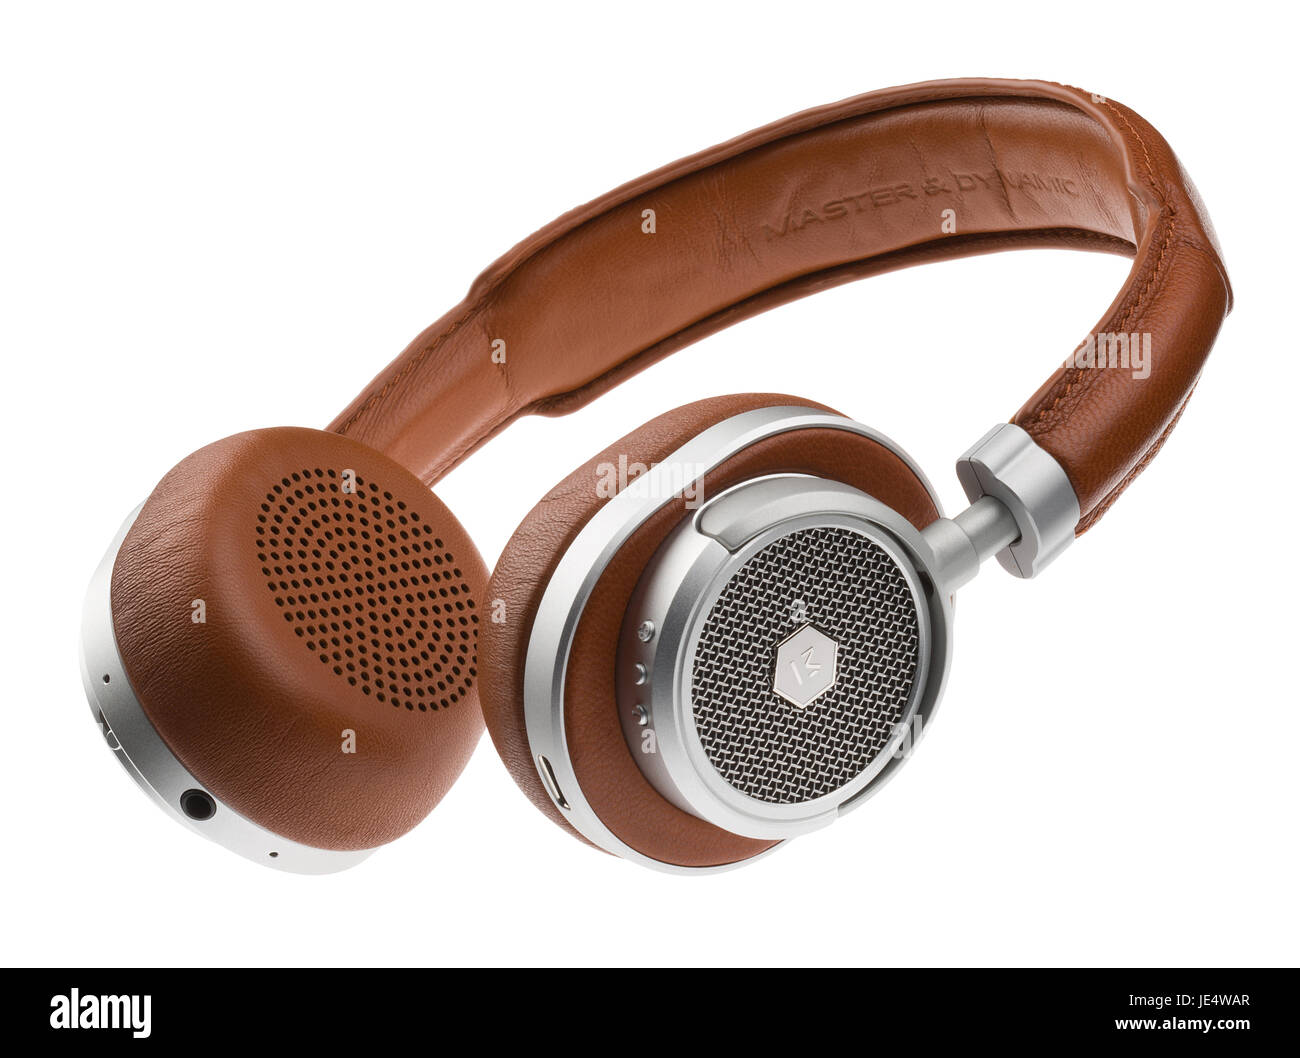 Master and Dynamic MW50 headphones. - Stock Image